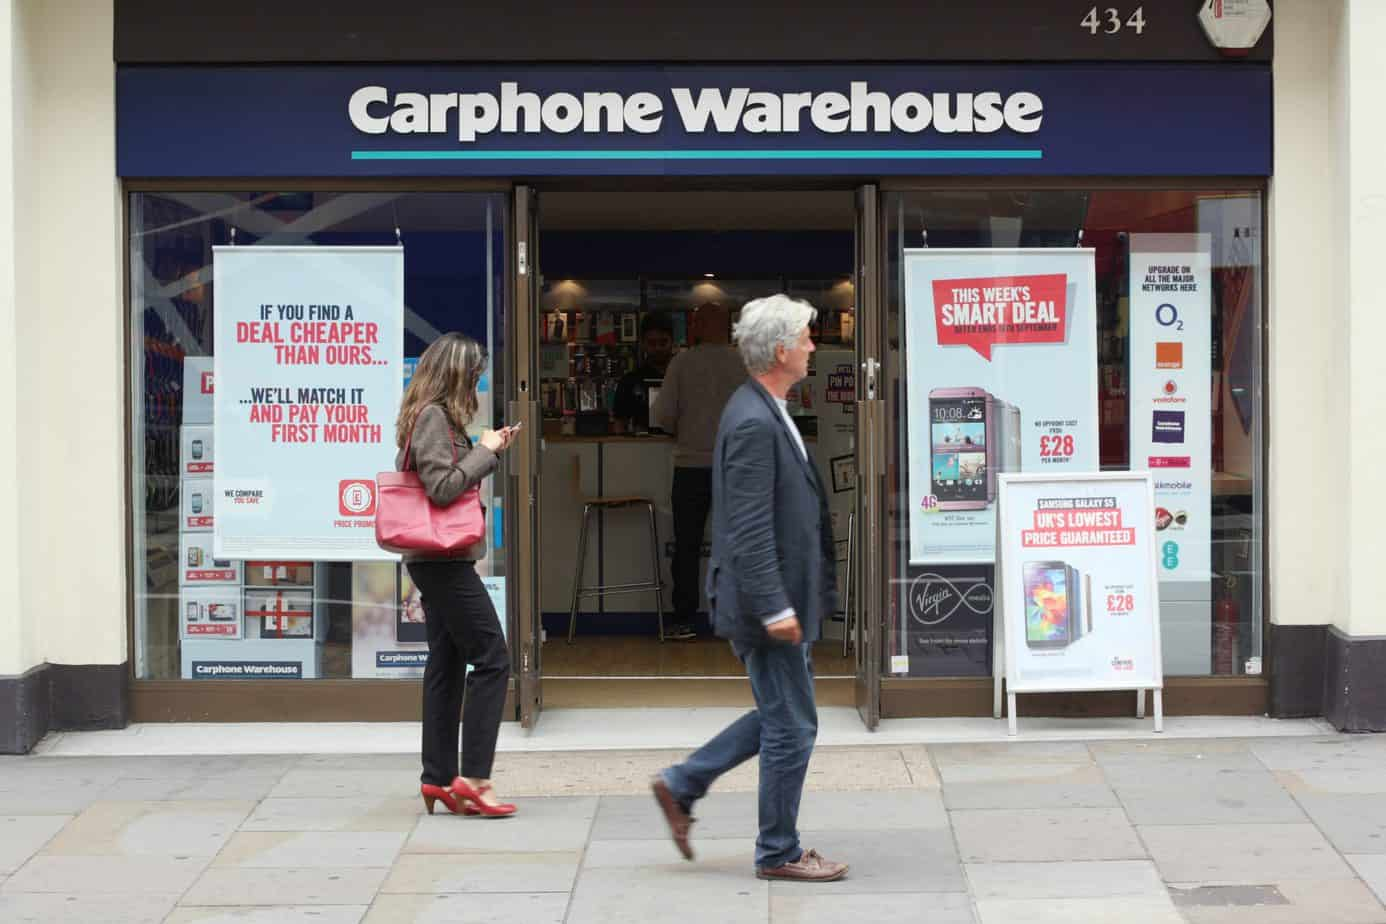 carphone warehouse shop in london